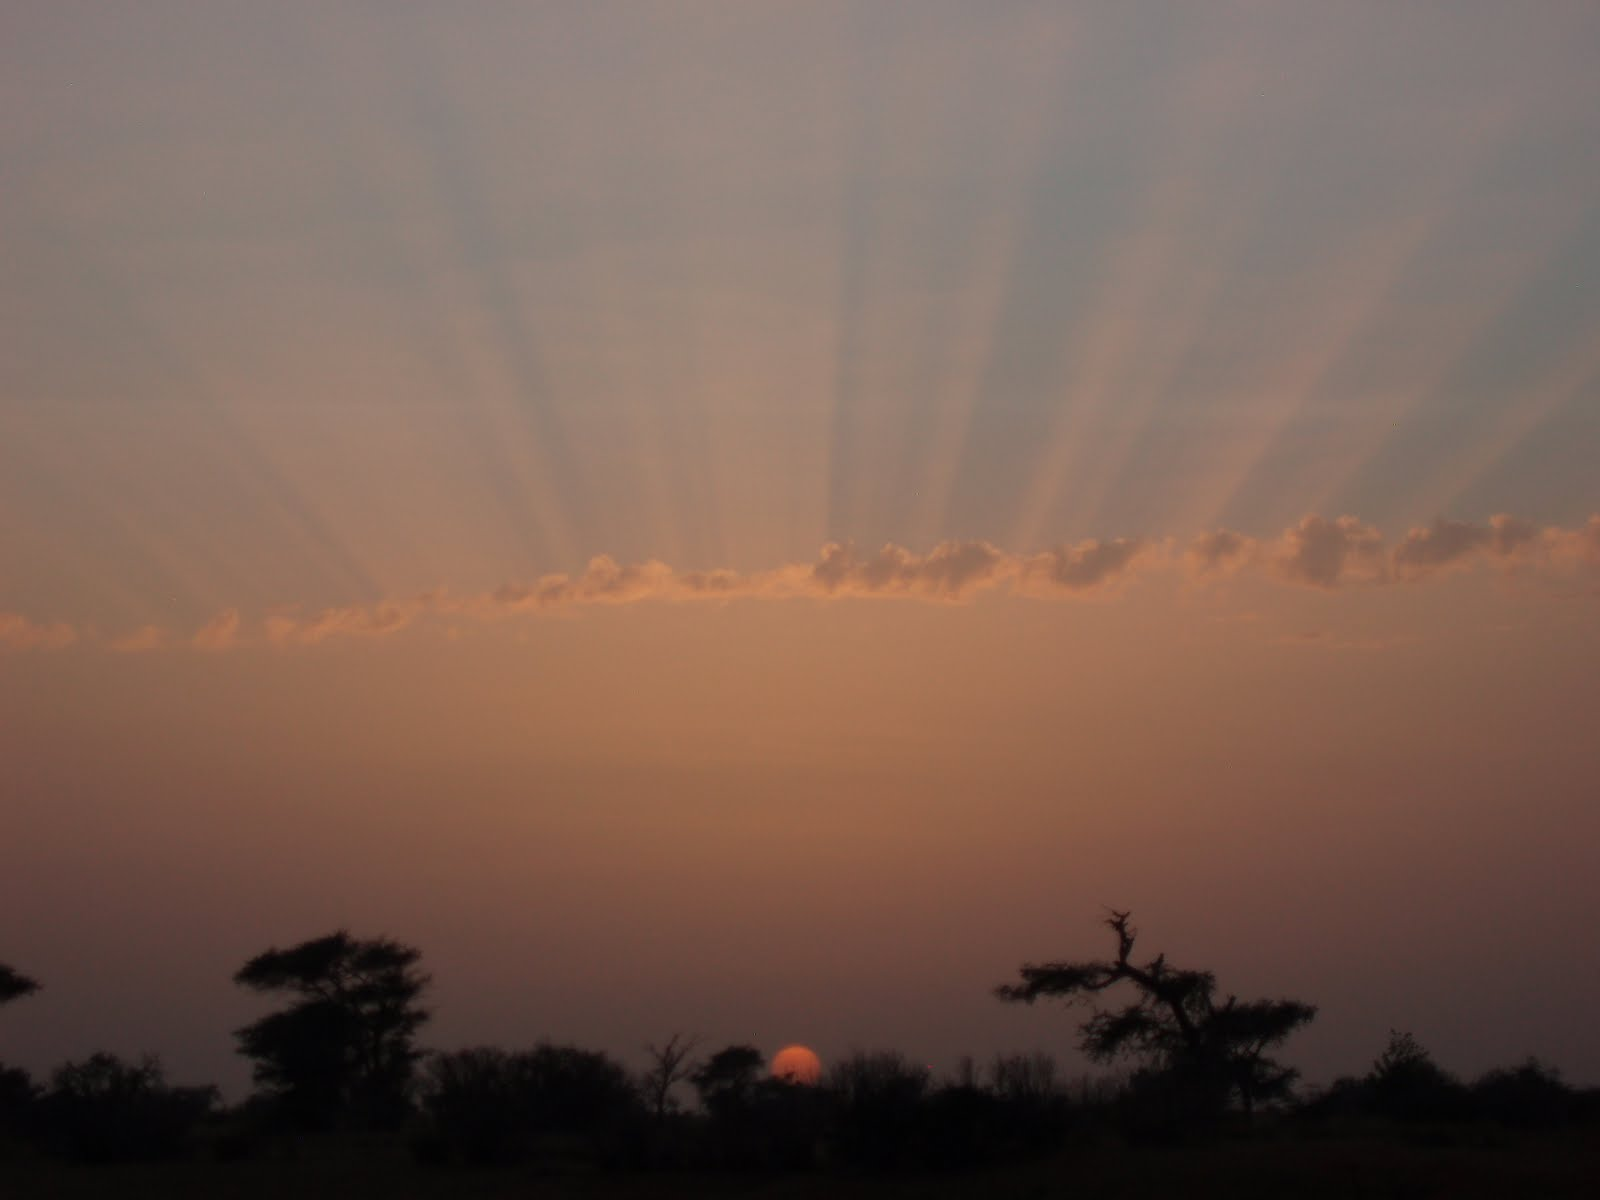 African Sunset - Edge of Sahara, Senegal, West Africa 2009